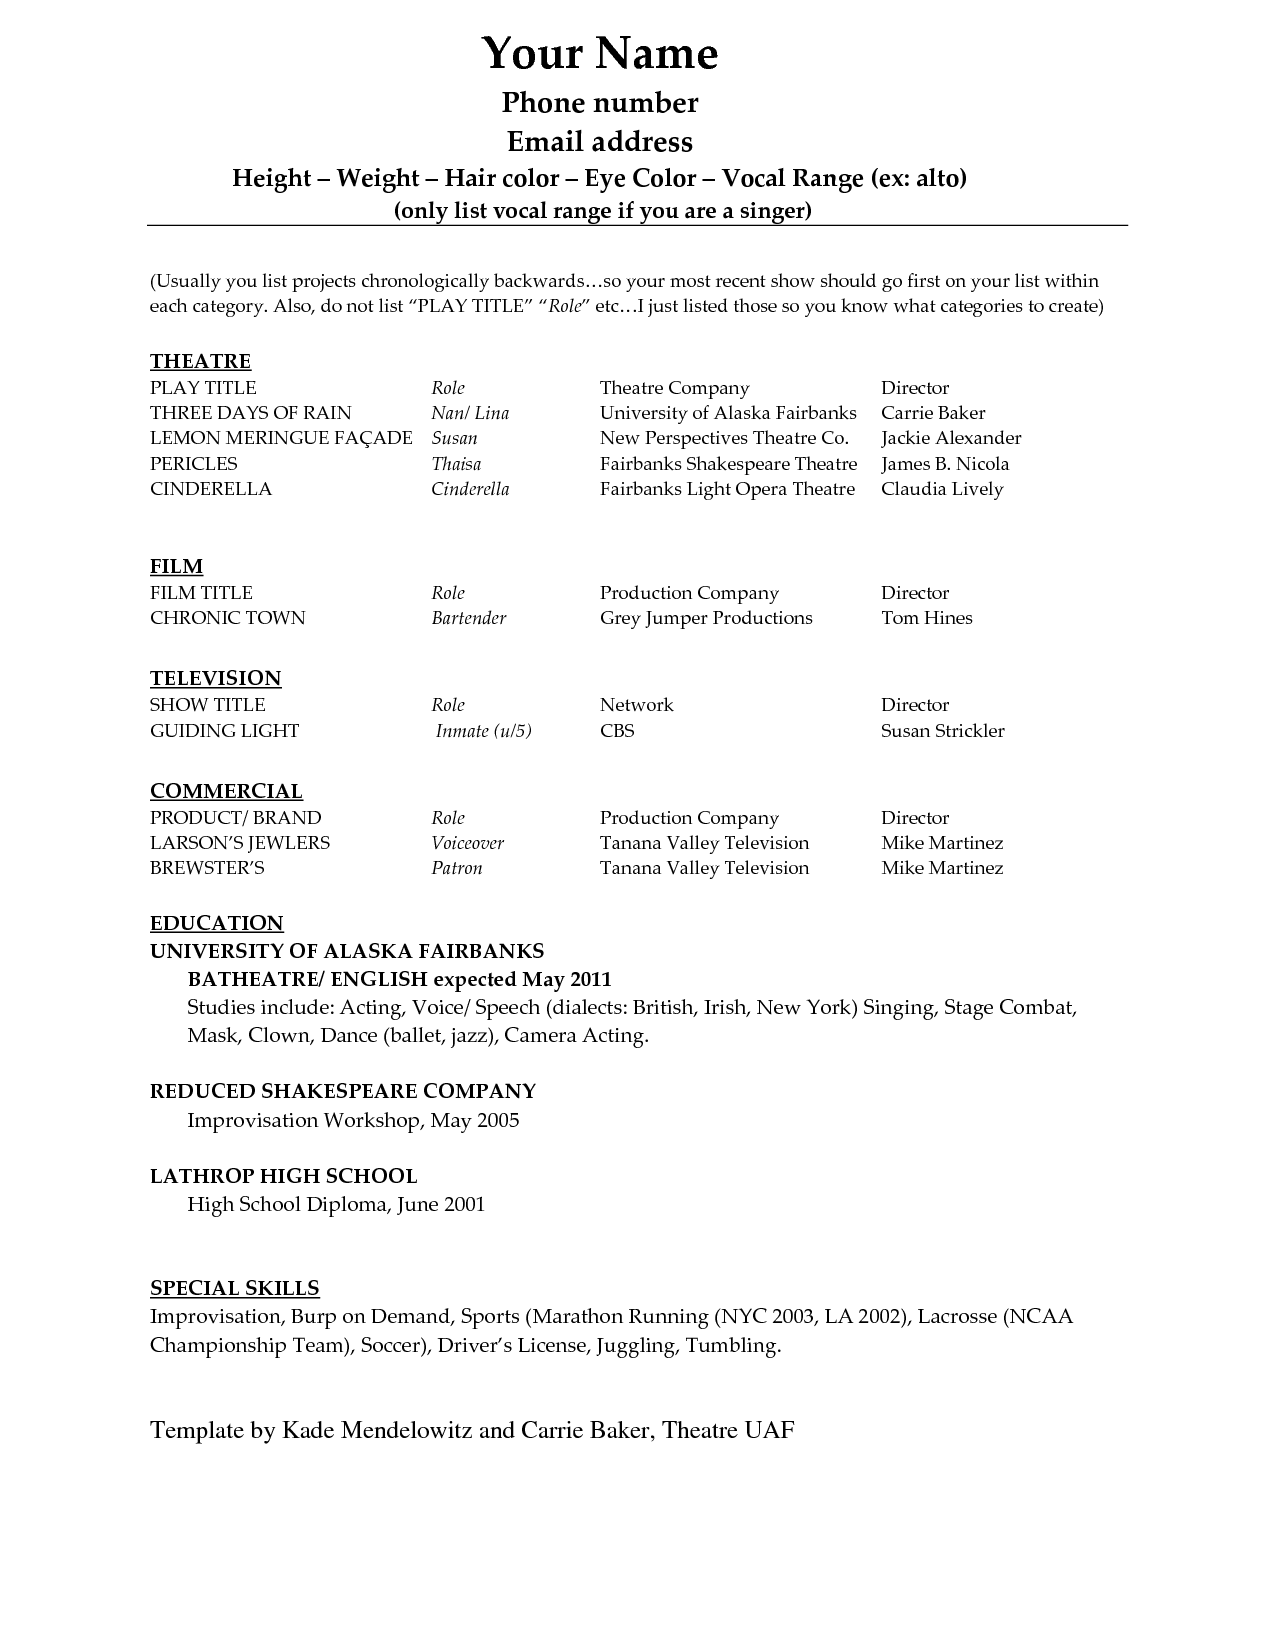 Acting resume template download free httpresumecareer acting resume template download free httpresumecareerfo yelopaper